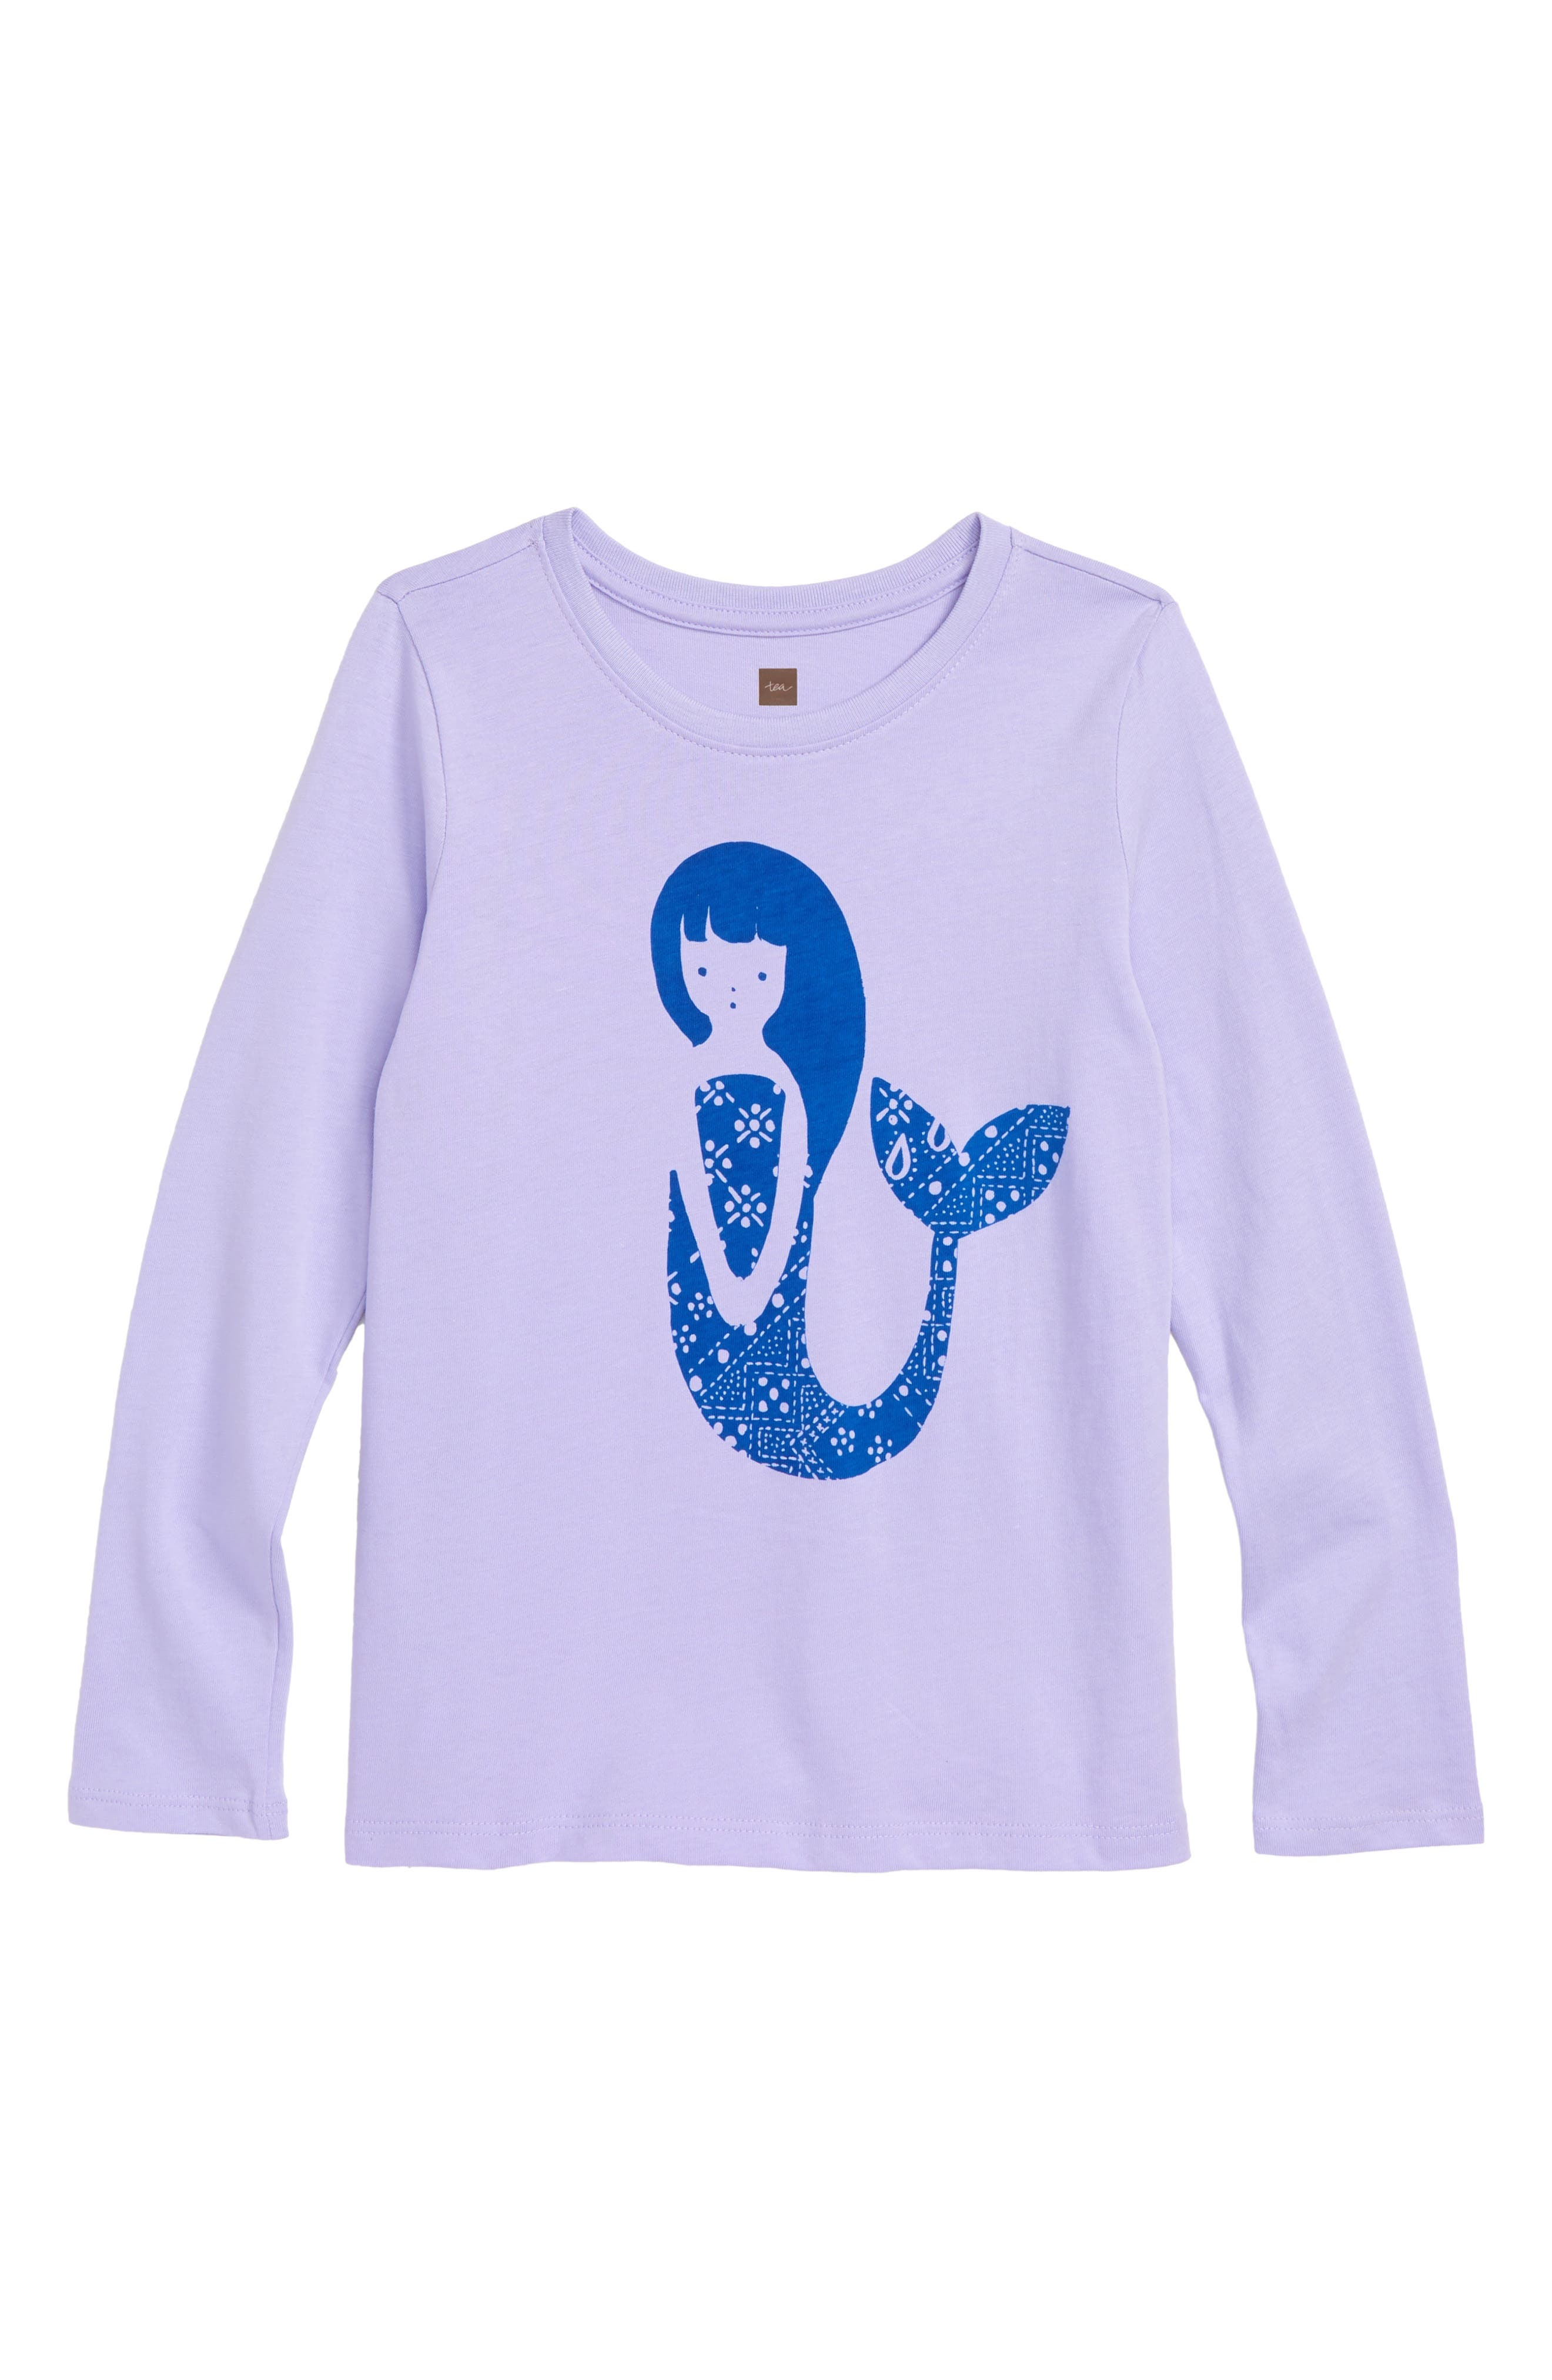 Mermaid Graphic Tee,                         Main,                         color, 500